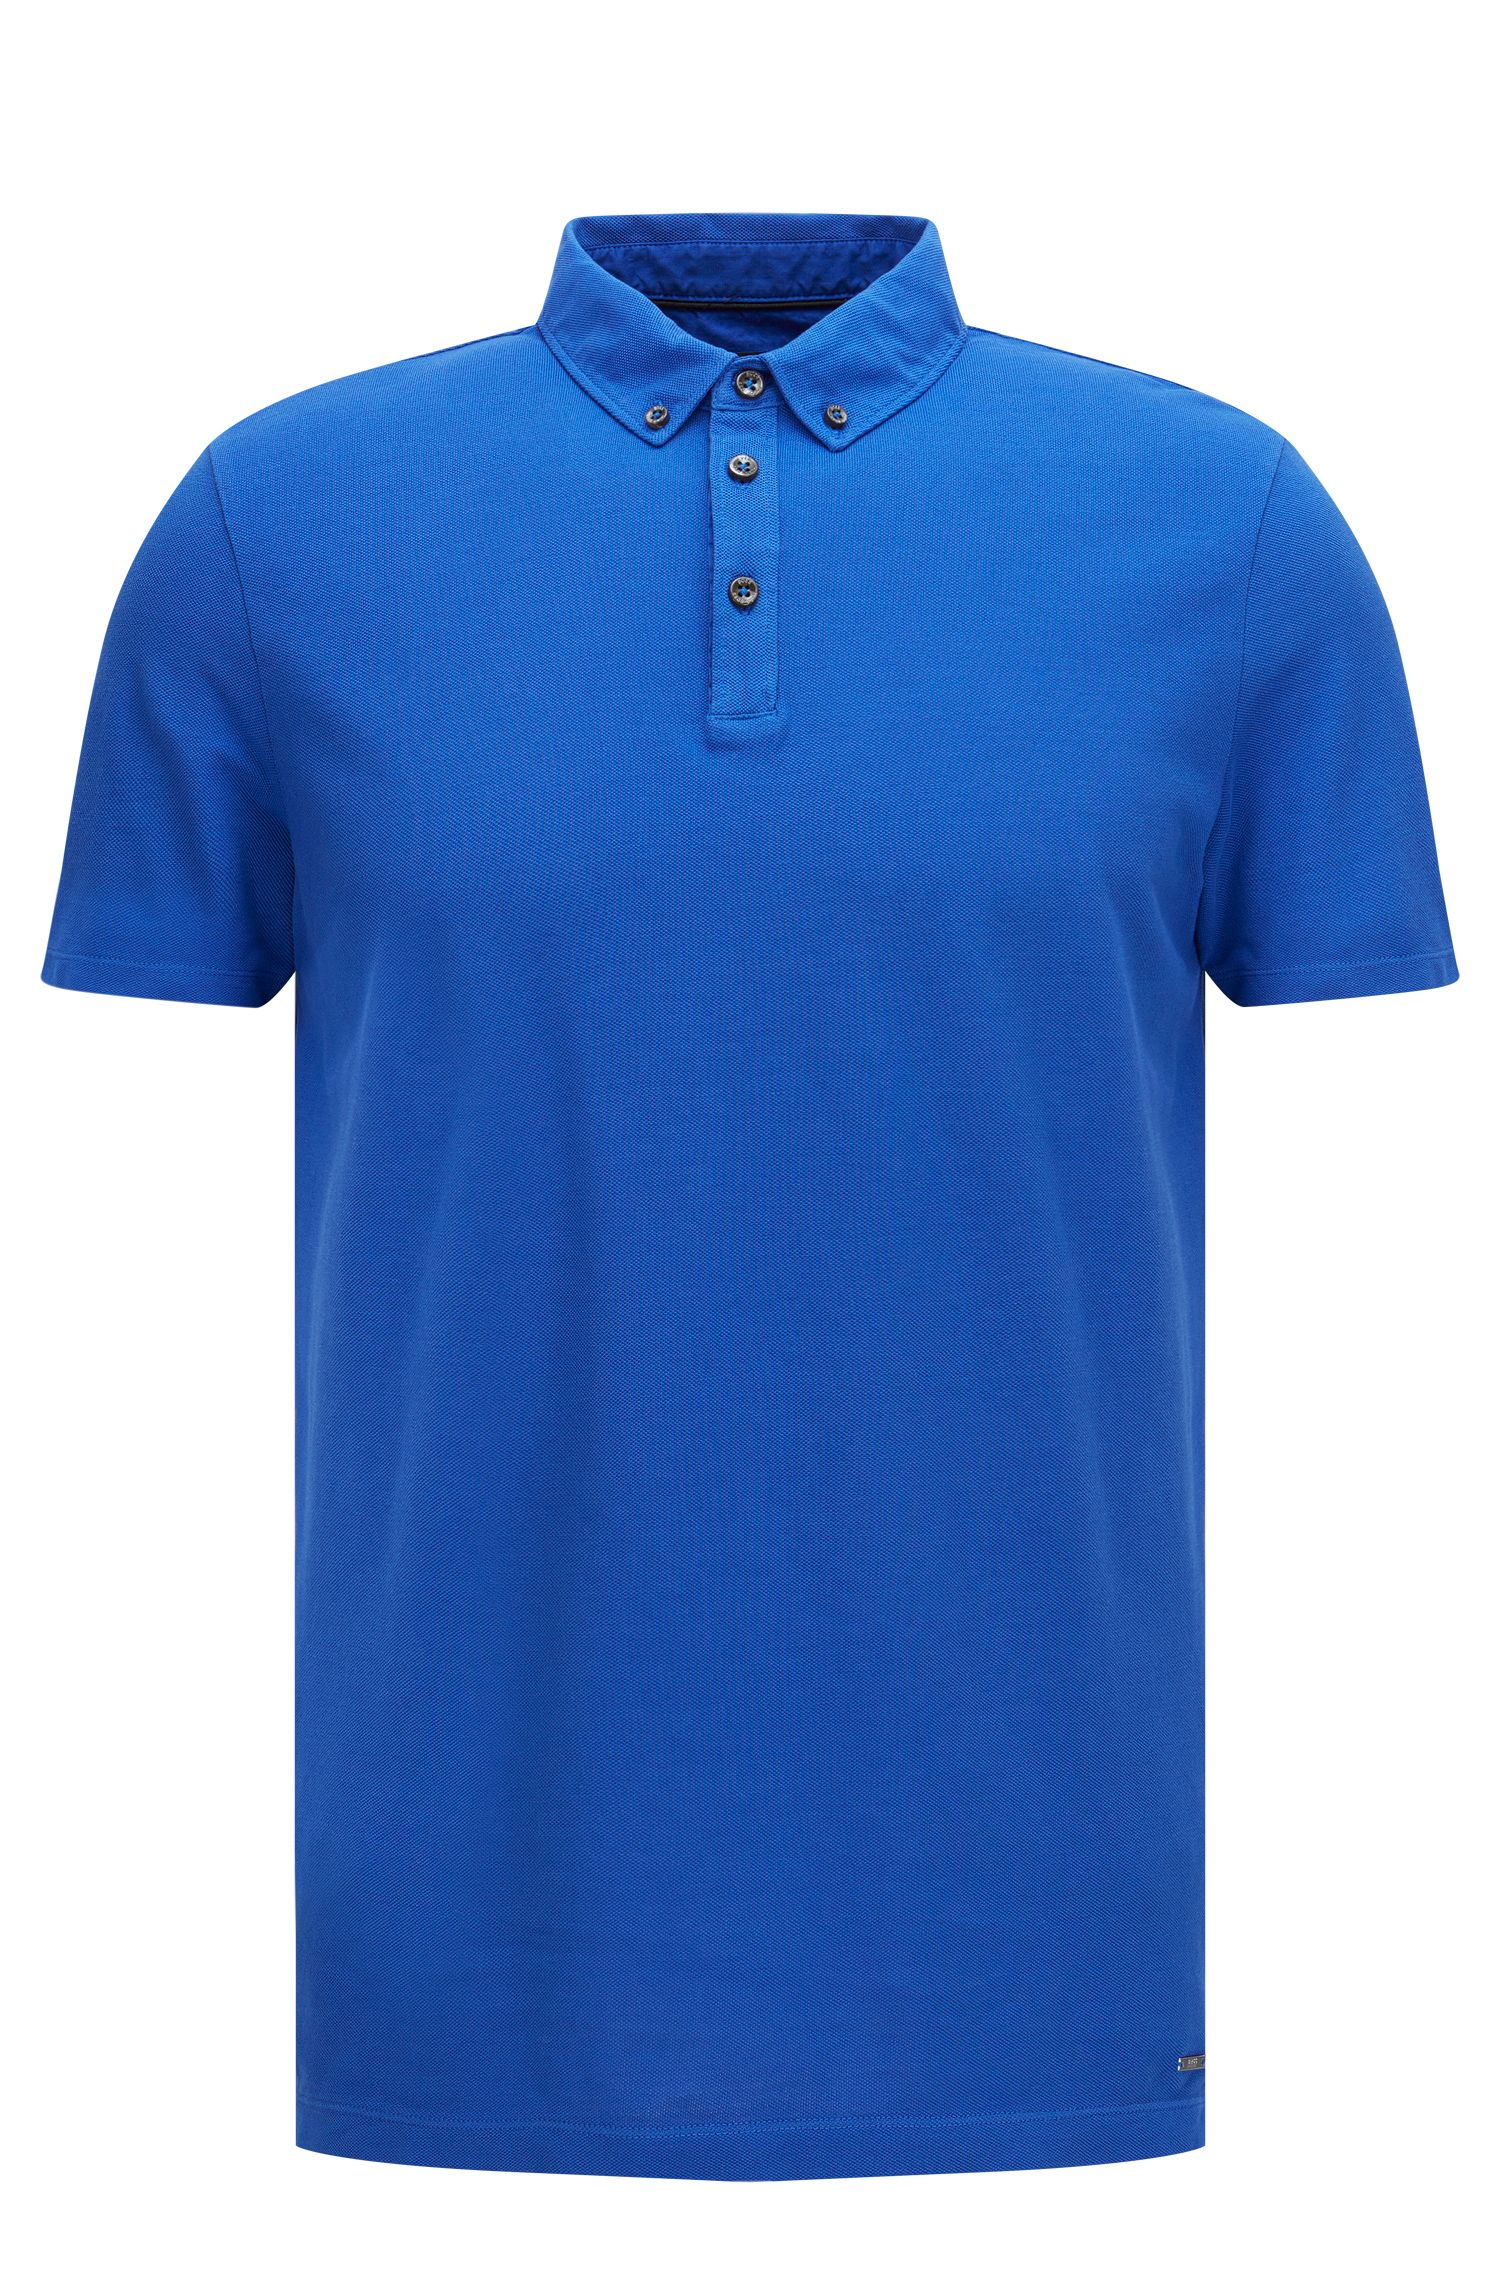 Regular-Fit Poloshirt aus Baumwolle mit Button-Down-Kragen: 'Press 18'